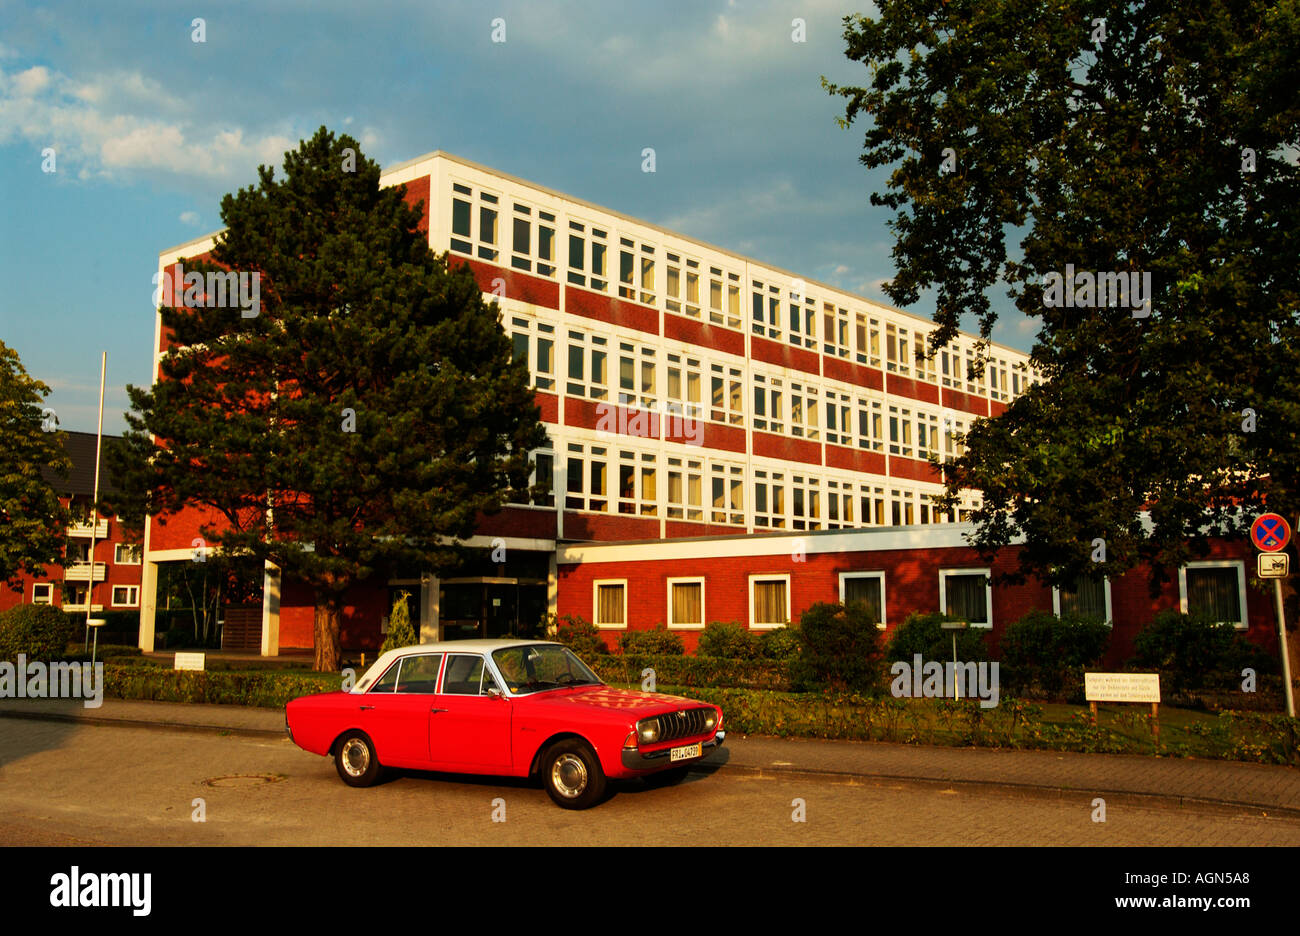 old car rda germany ford seventies red building kitch street - Stock Image